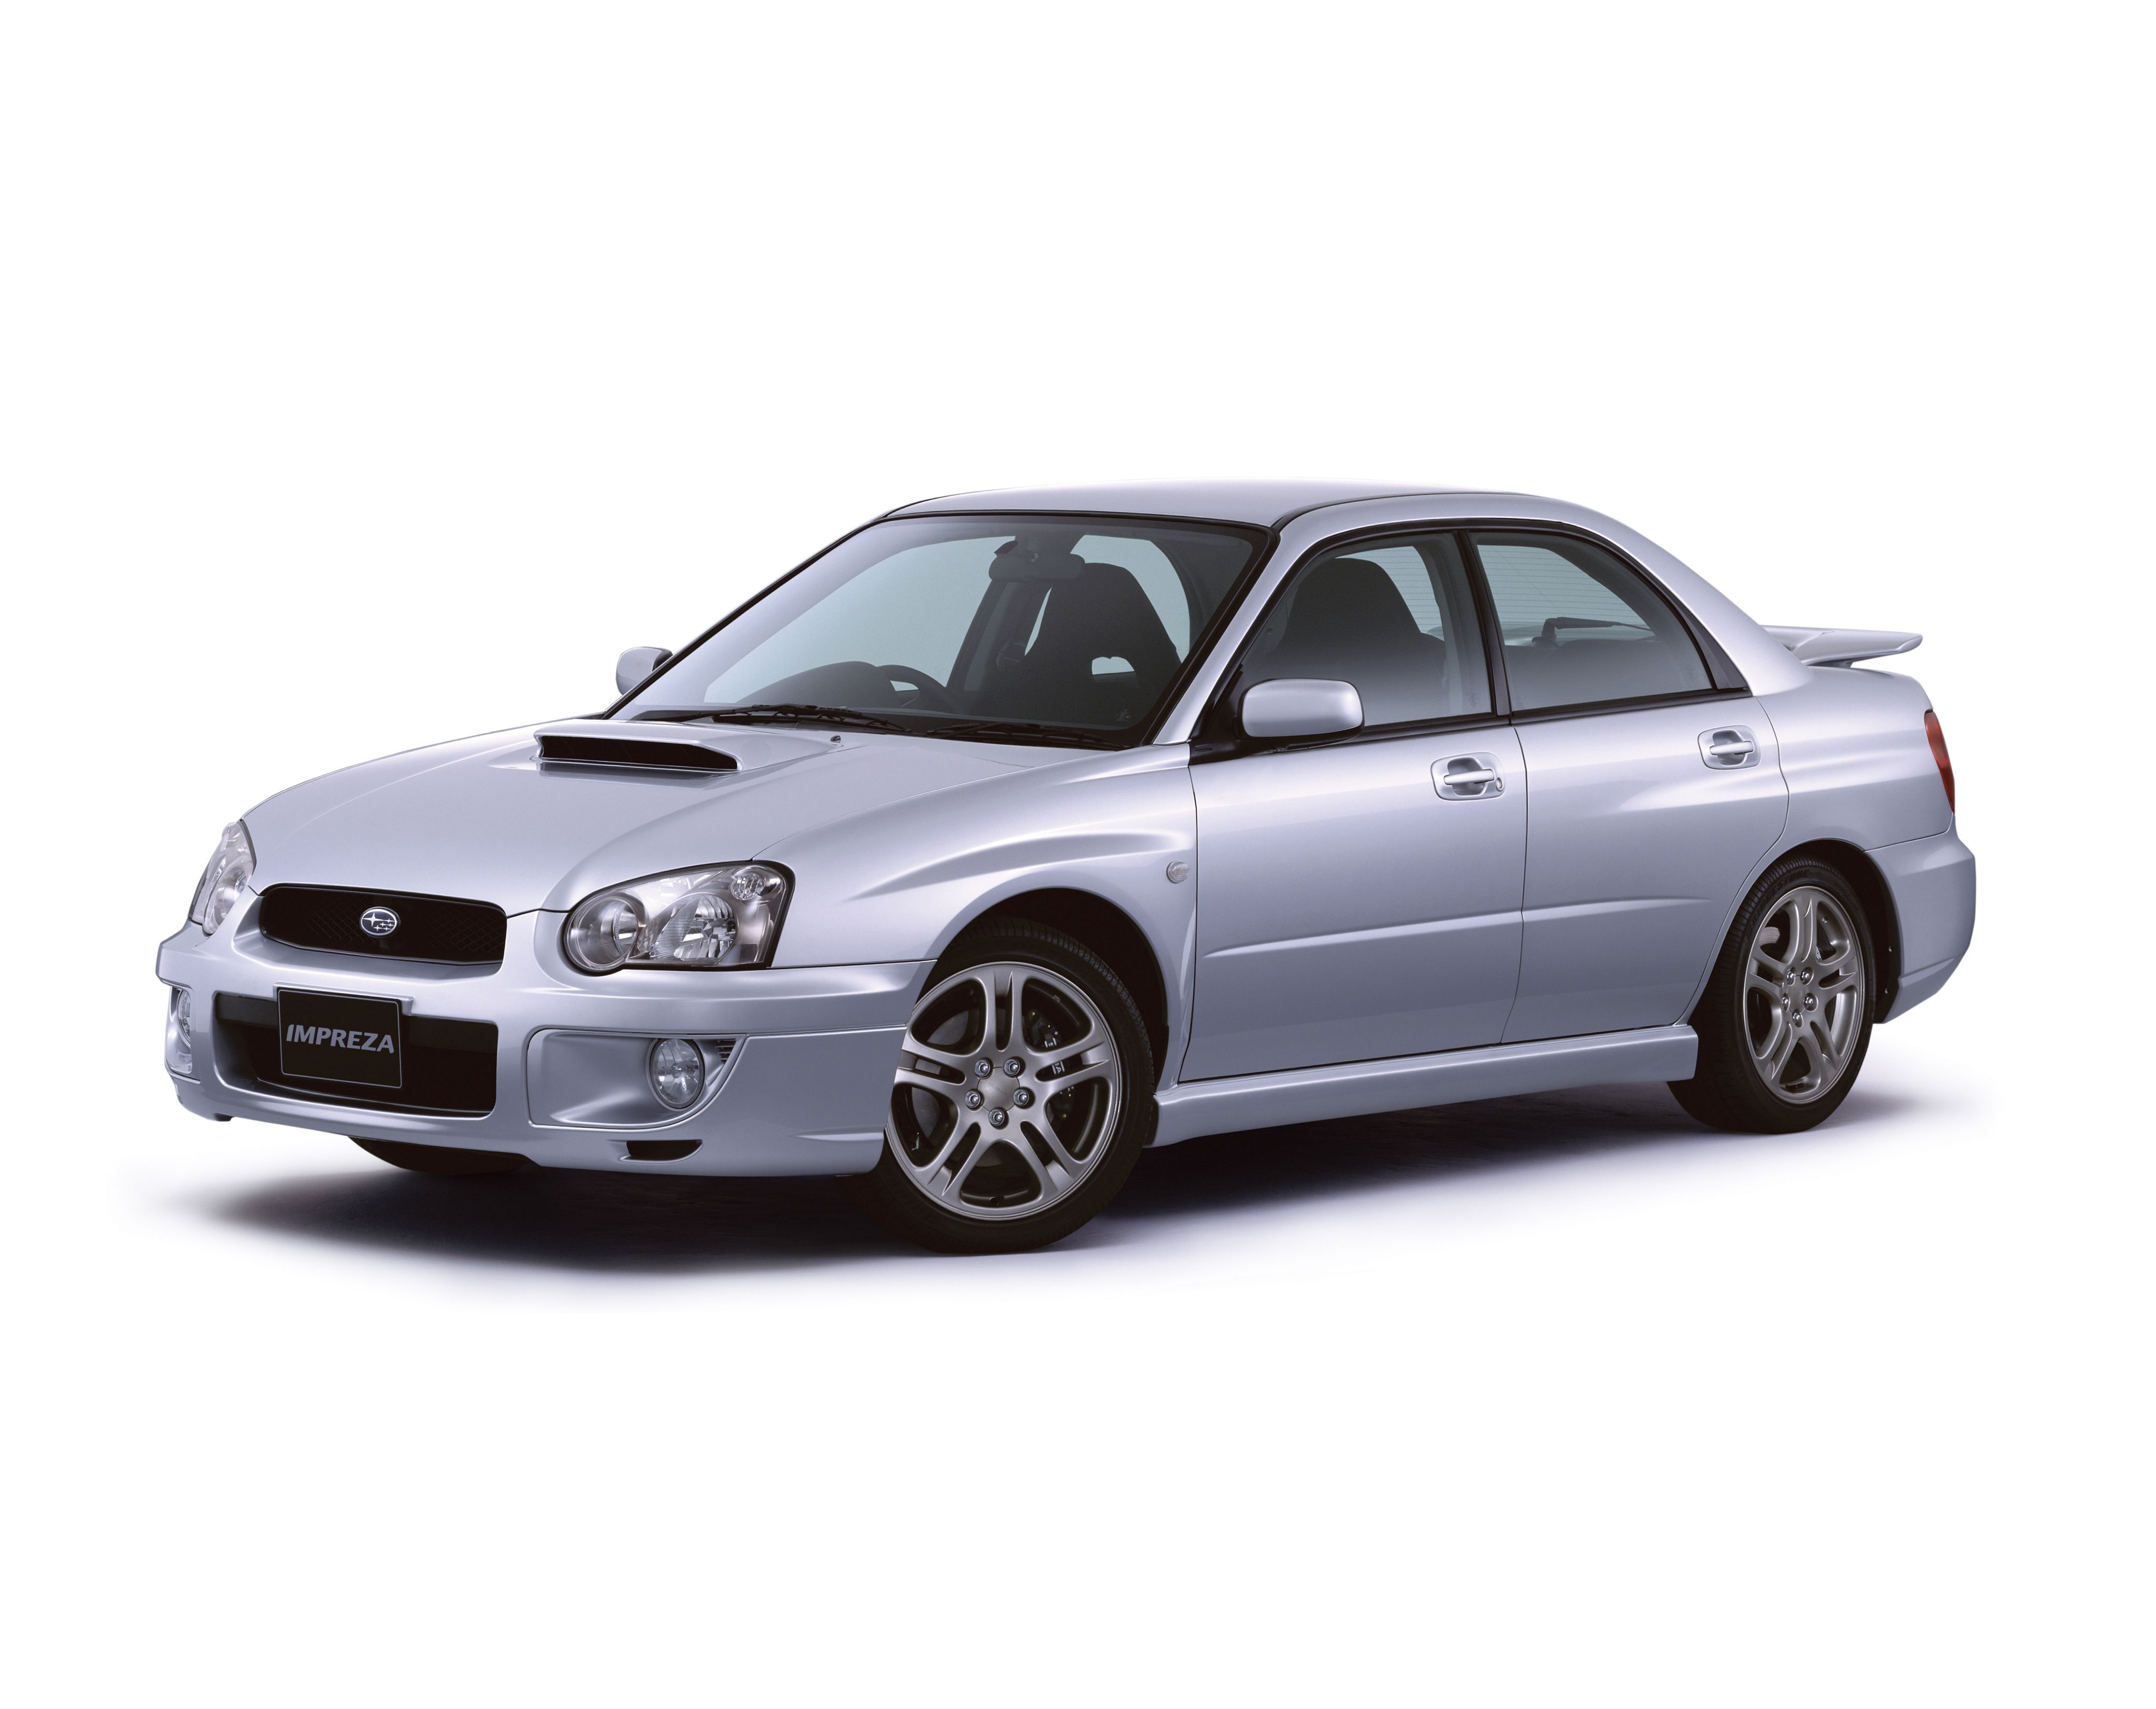 6df14f8cc236e7374243c9eb79d71669 Take A Look About 2002 Subaru Impreza Wrx Specs